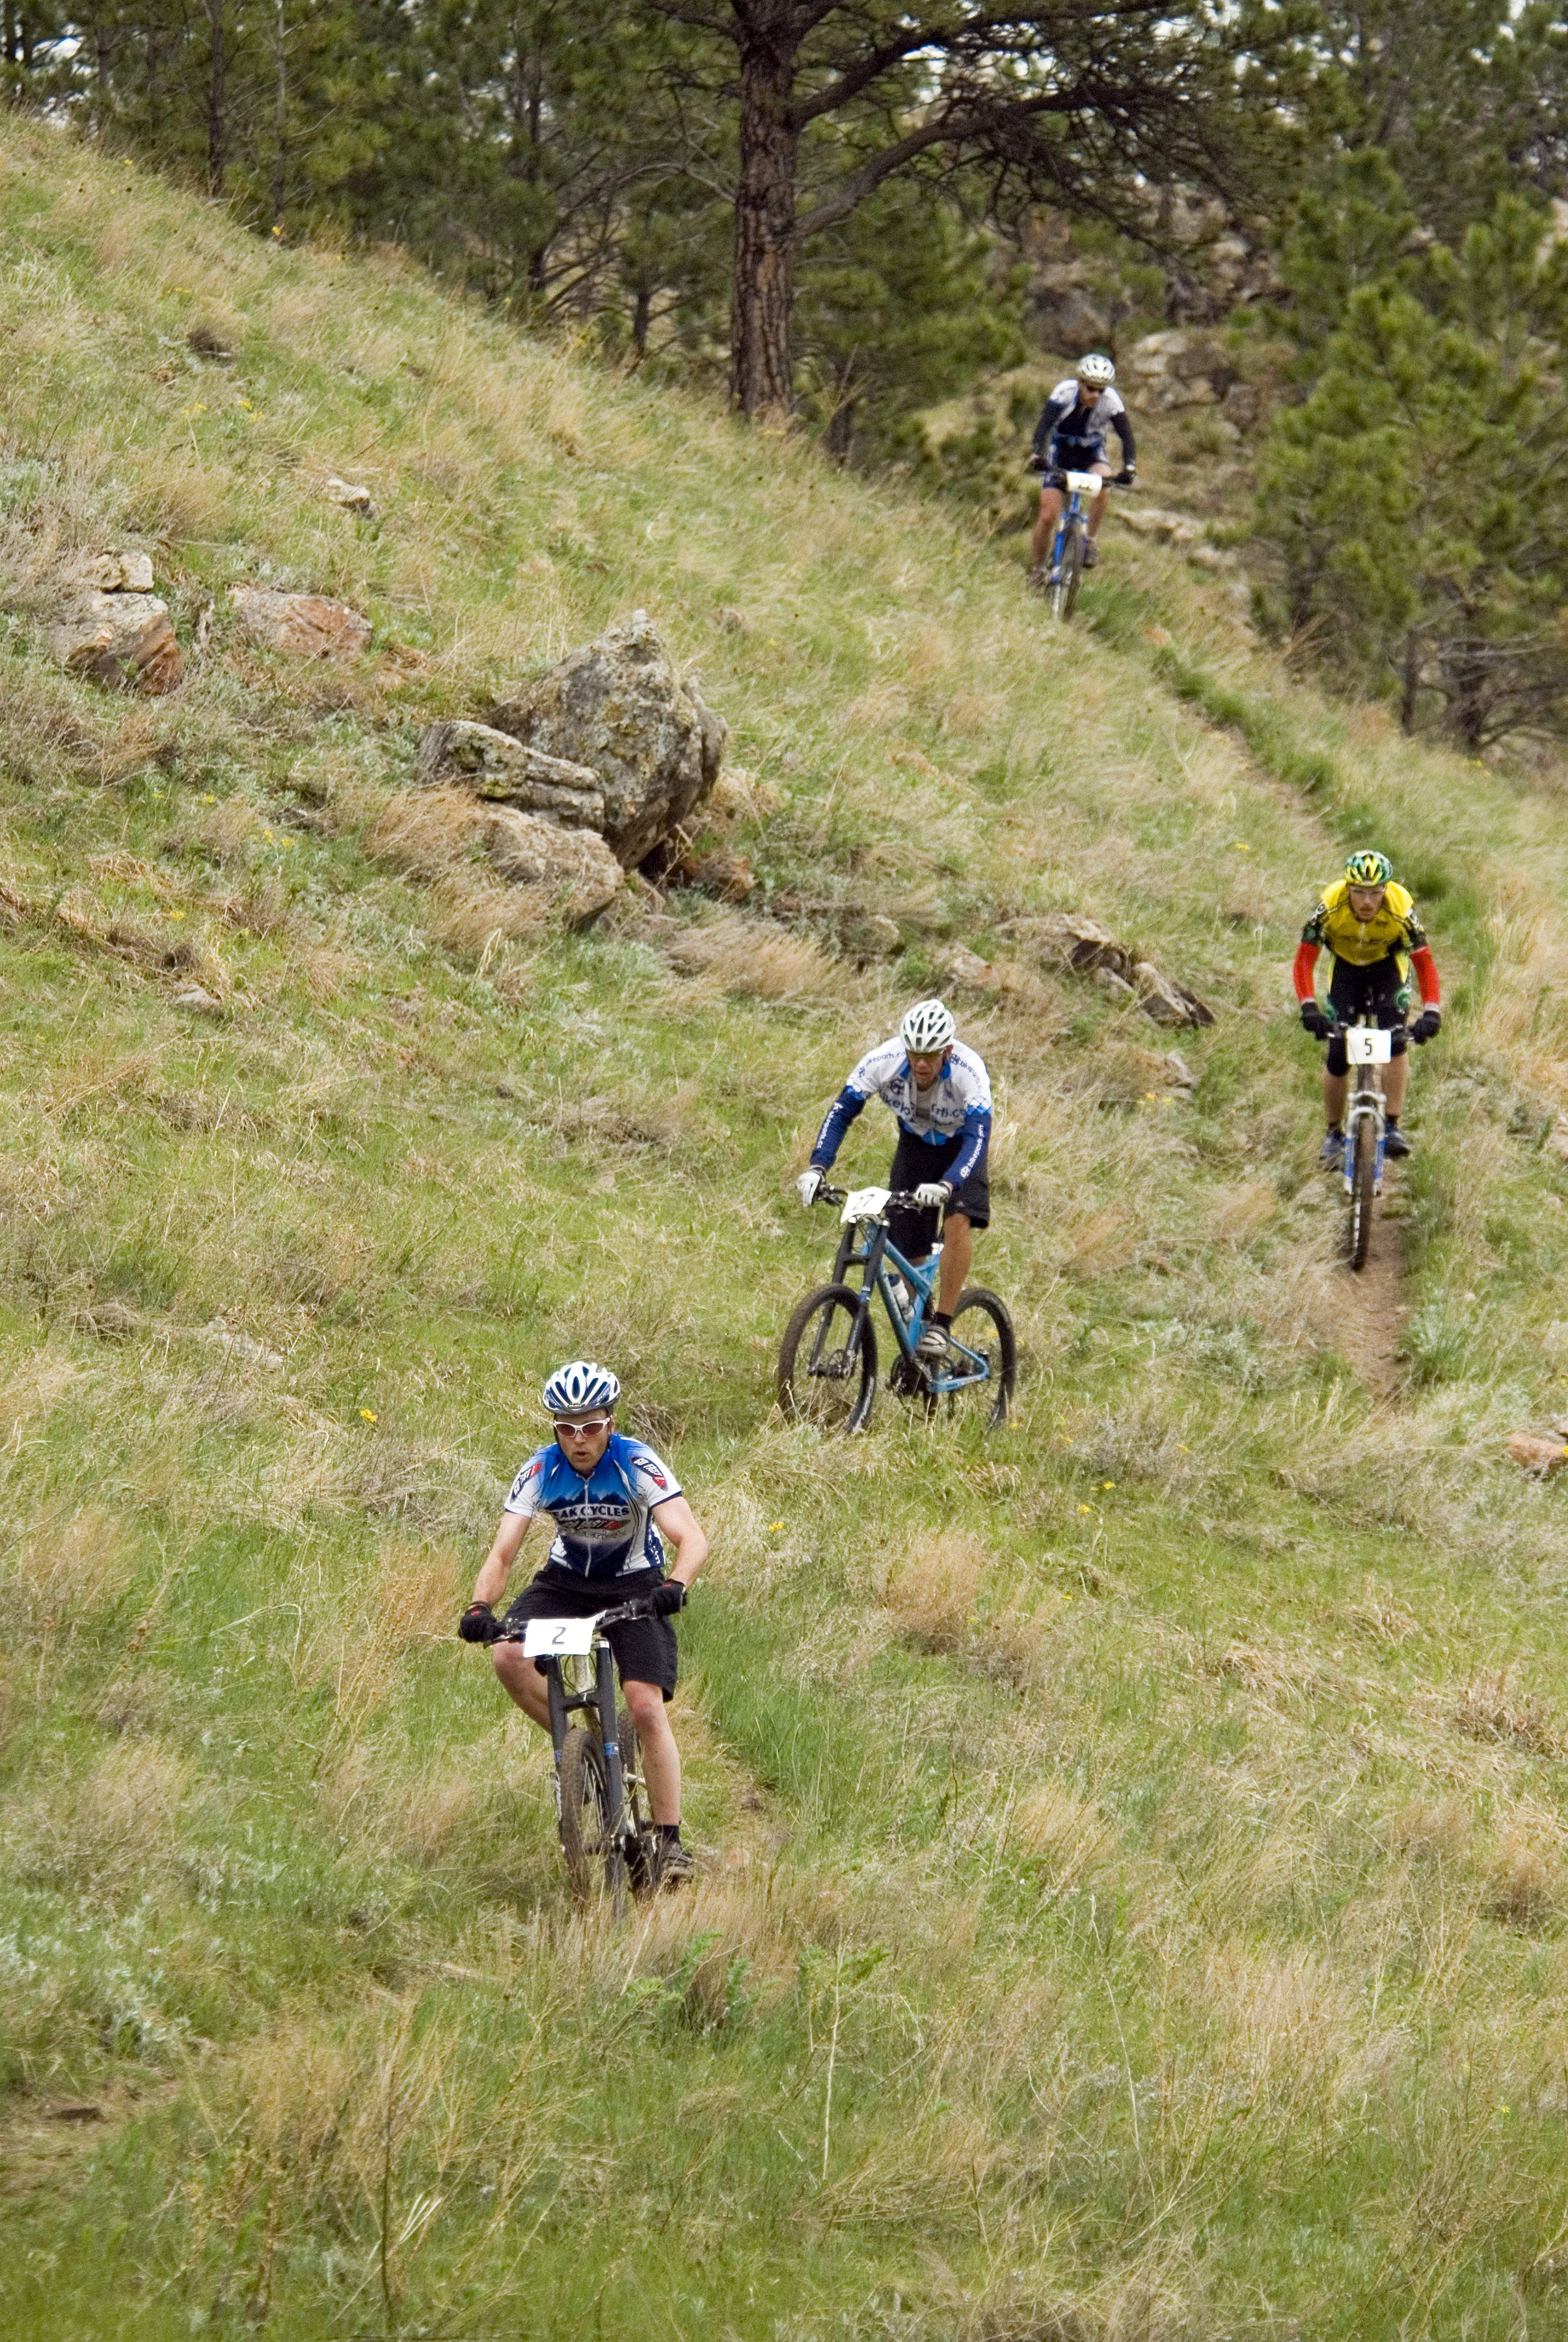 Black Hills Fat Tire Festival Fun Things To Do In The Black